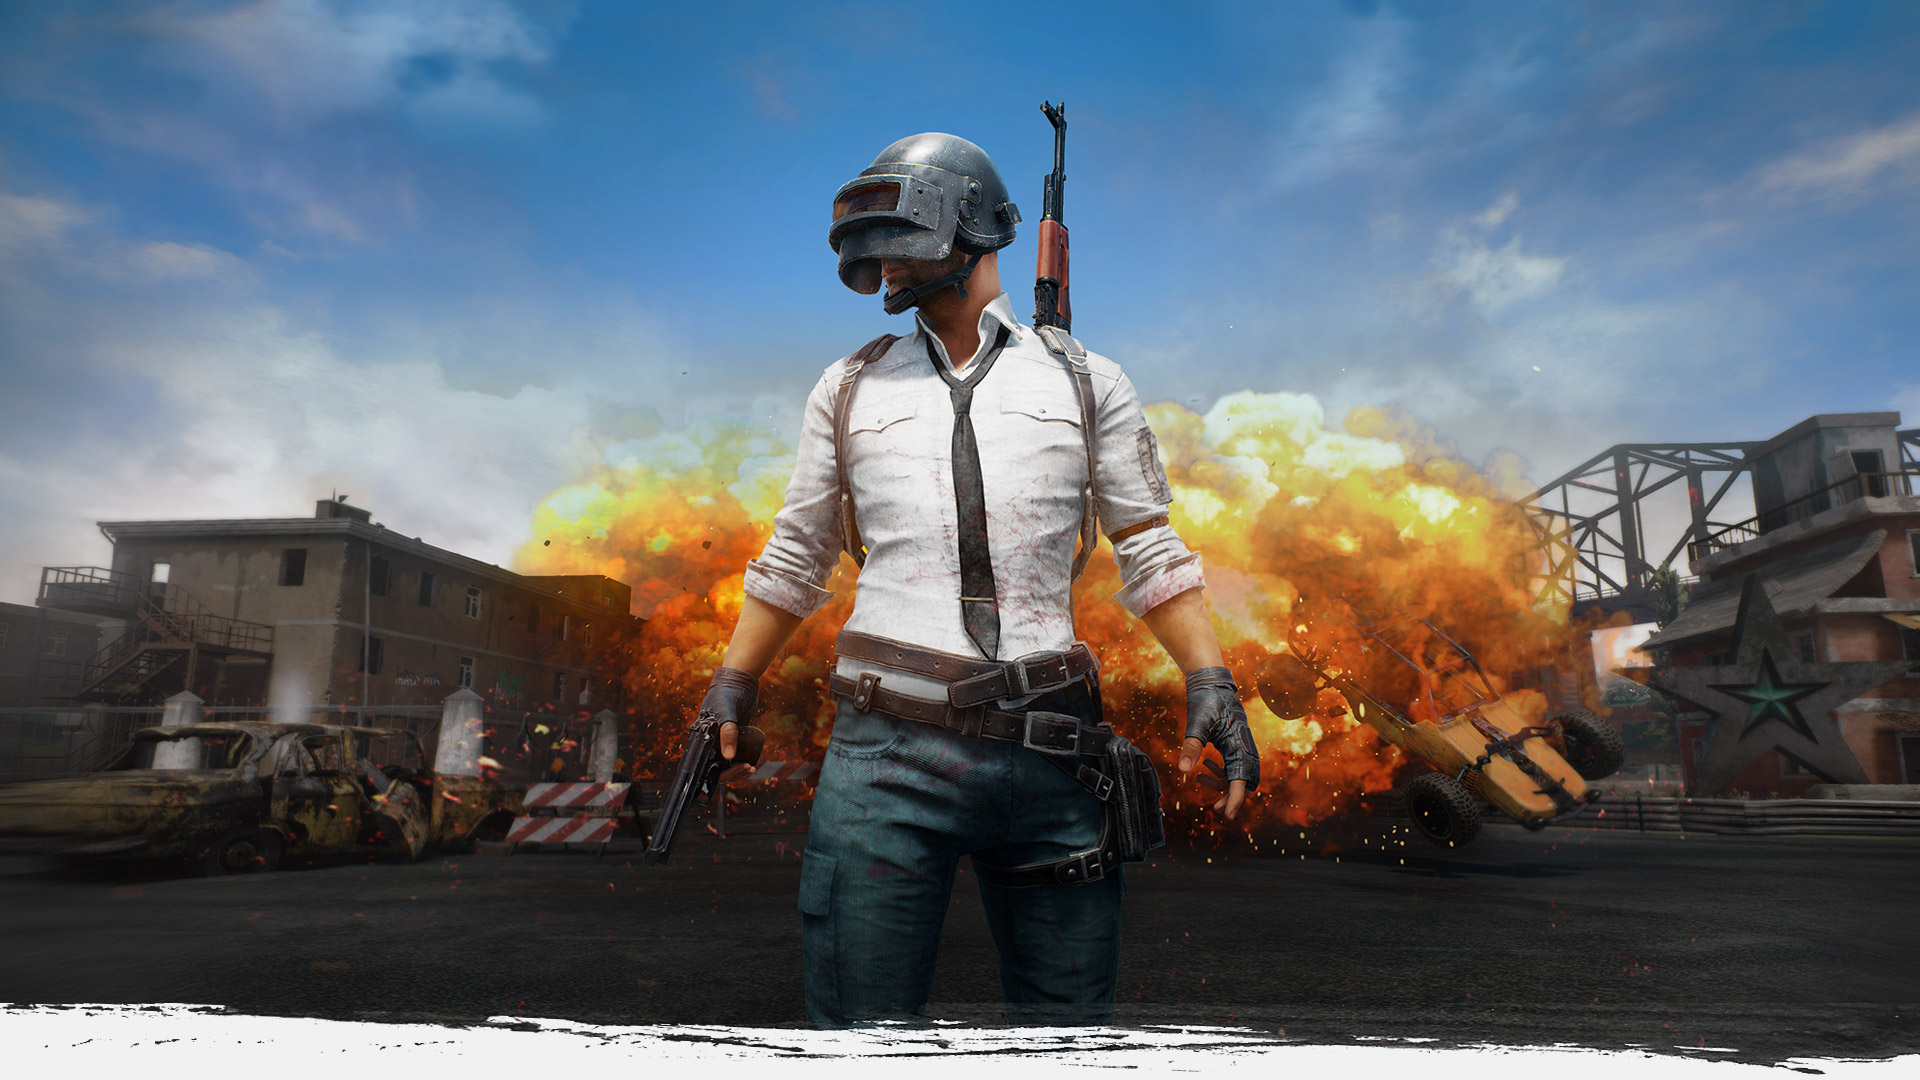 The promo art for PlayerUknown's Battlegrounds